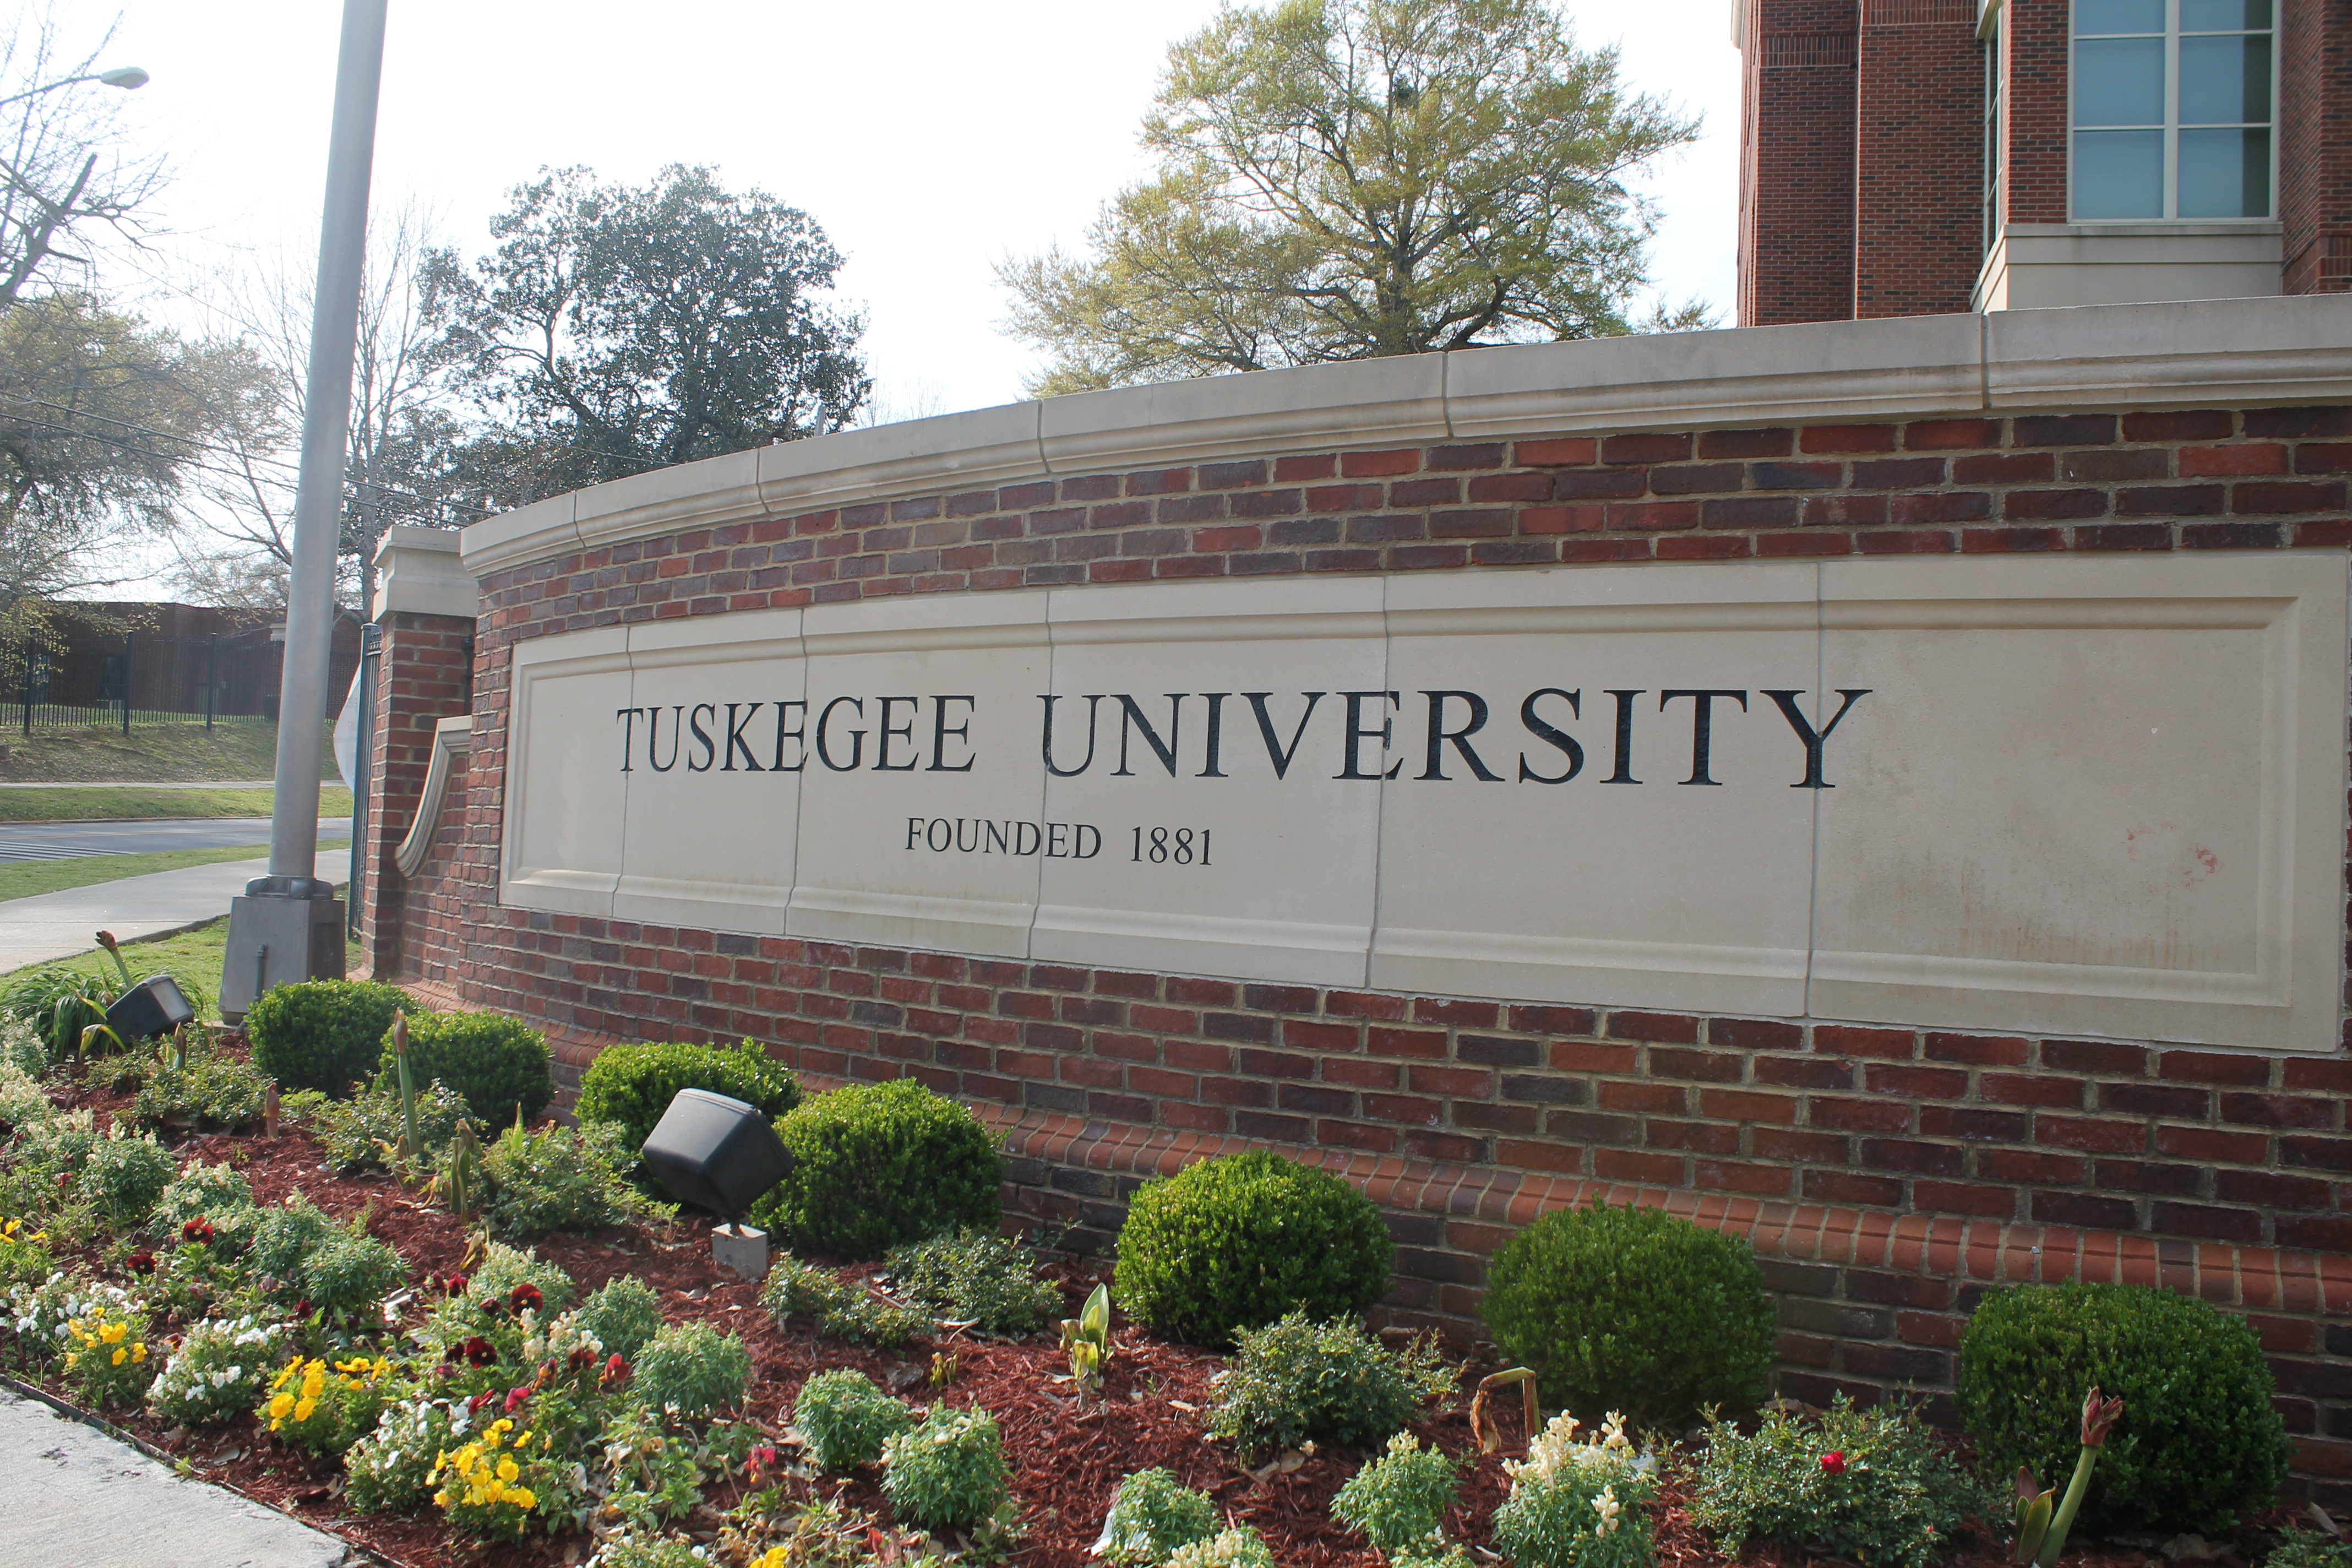 tuskegee institute jewish dating site Description: tuskegee institute national historic site is inextricably bound to the history of two illustrious men: booker t washington and george washington carver both born into slavery, each achieved personal successes and left legacies that were almost unimaginable for african-americans in the 19th and early 20th centuries.